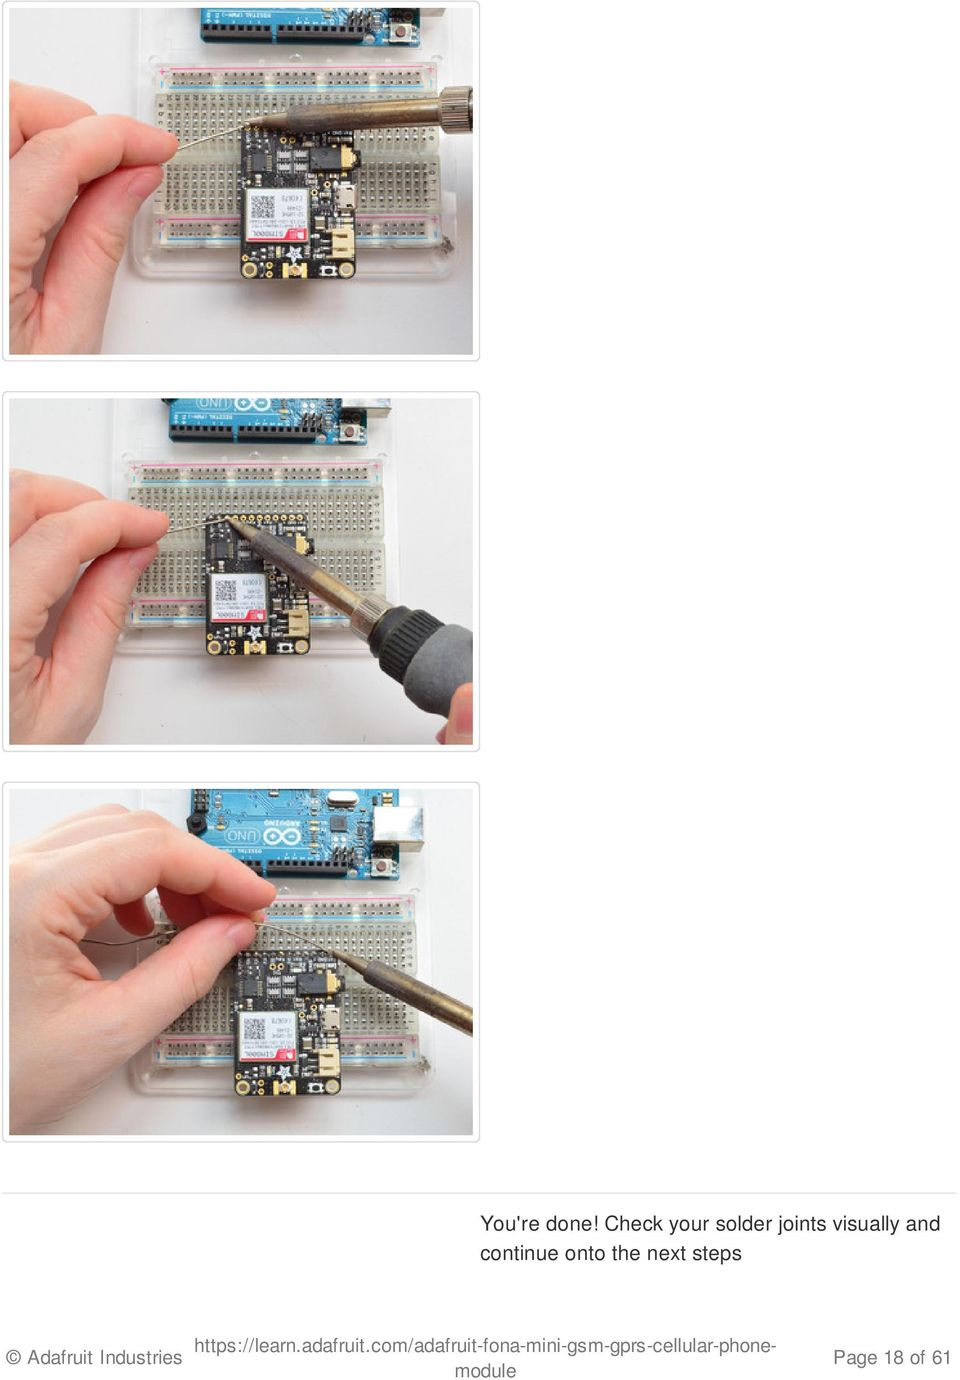 Adafruit Fona Created By Lady Ada Last Updated On 5011 Pm Est Pdf Gsm Gps Circuit Board Assembly With Module Sim808 Sim900a Sim900 View Joints Visually And